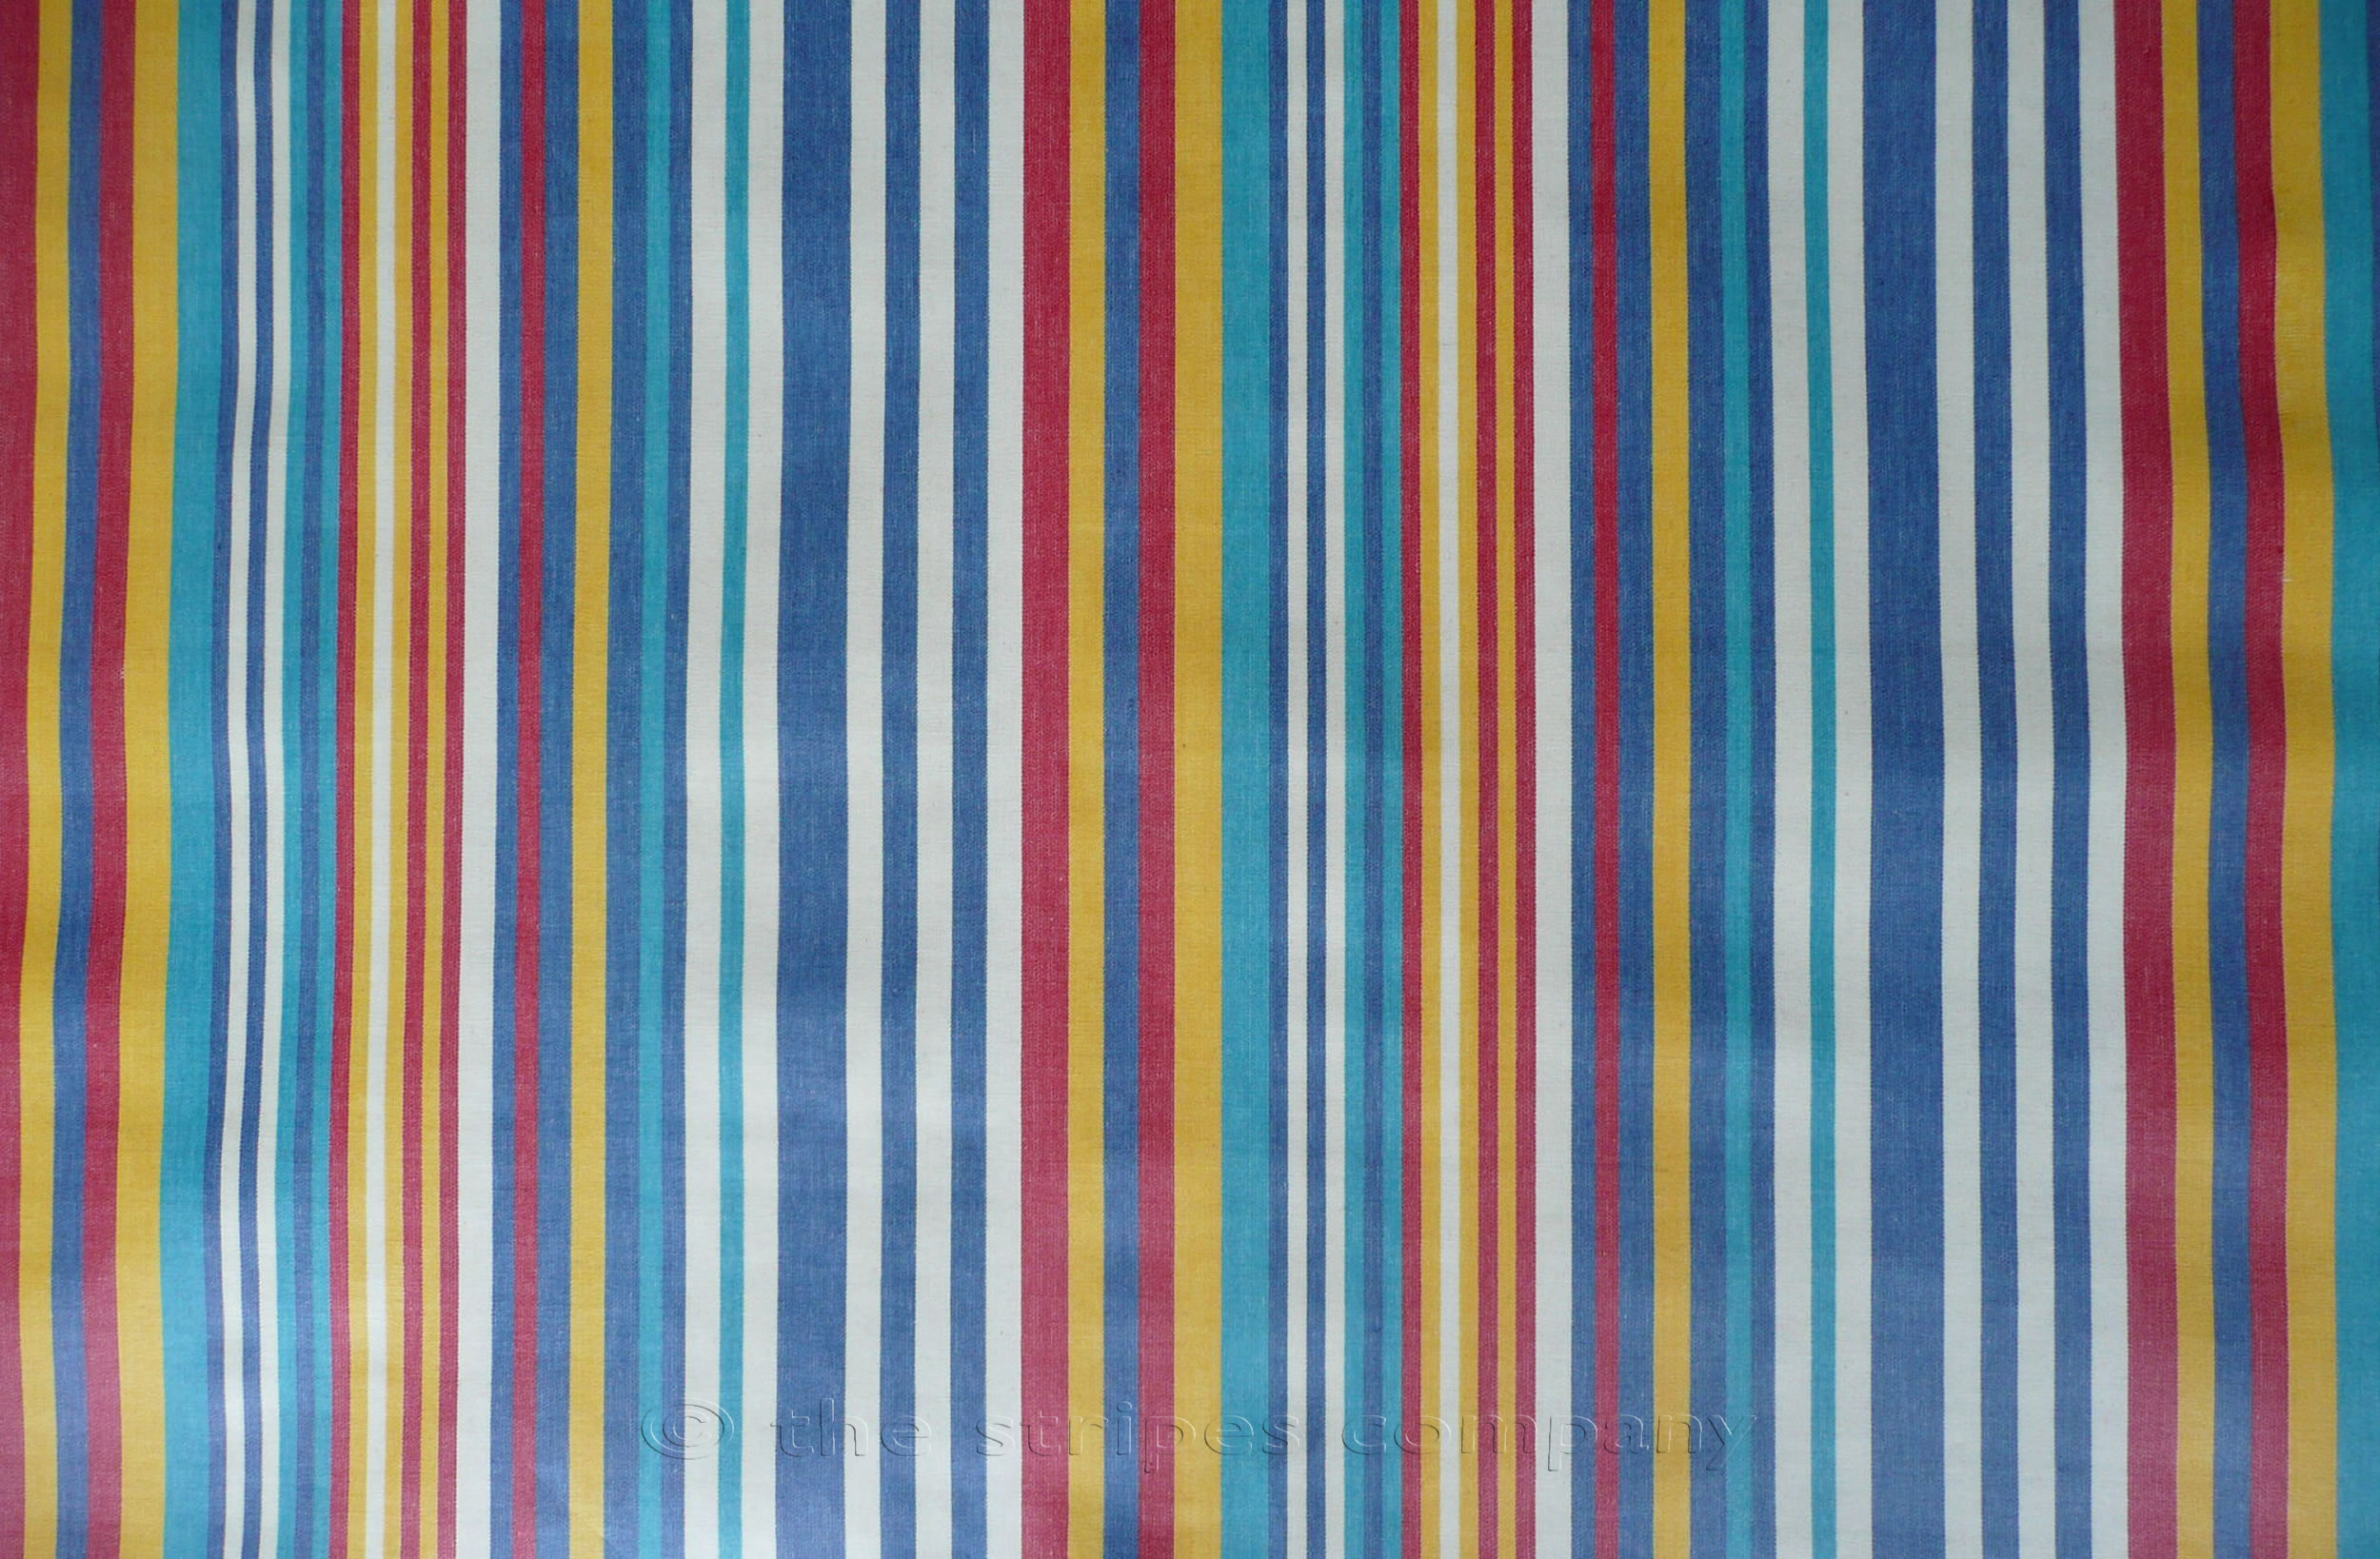 Denim Blue Stripe PVC Oilcloth Fabrics | Wipeable Stripe Fabrics - Marathon Stripes